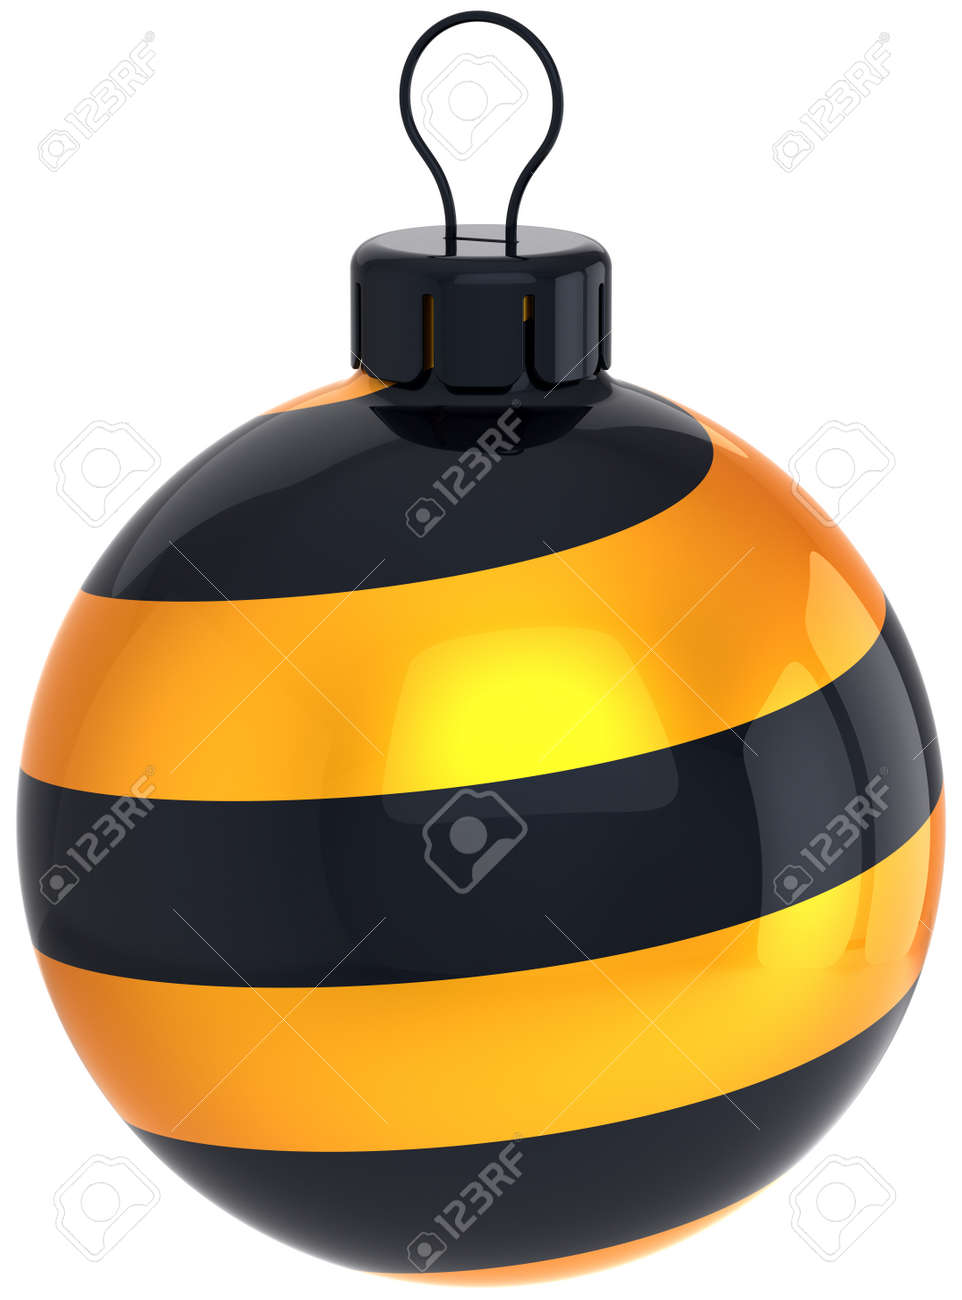 Christmas ball bauble Happy New Year stylish decoration golden black. Merry Xmas greeting card design element. Winter holiday icon concept. Detailed 3d render. Isolated on white background Stock Photo - 11270753